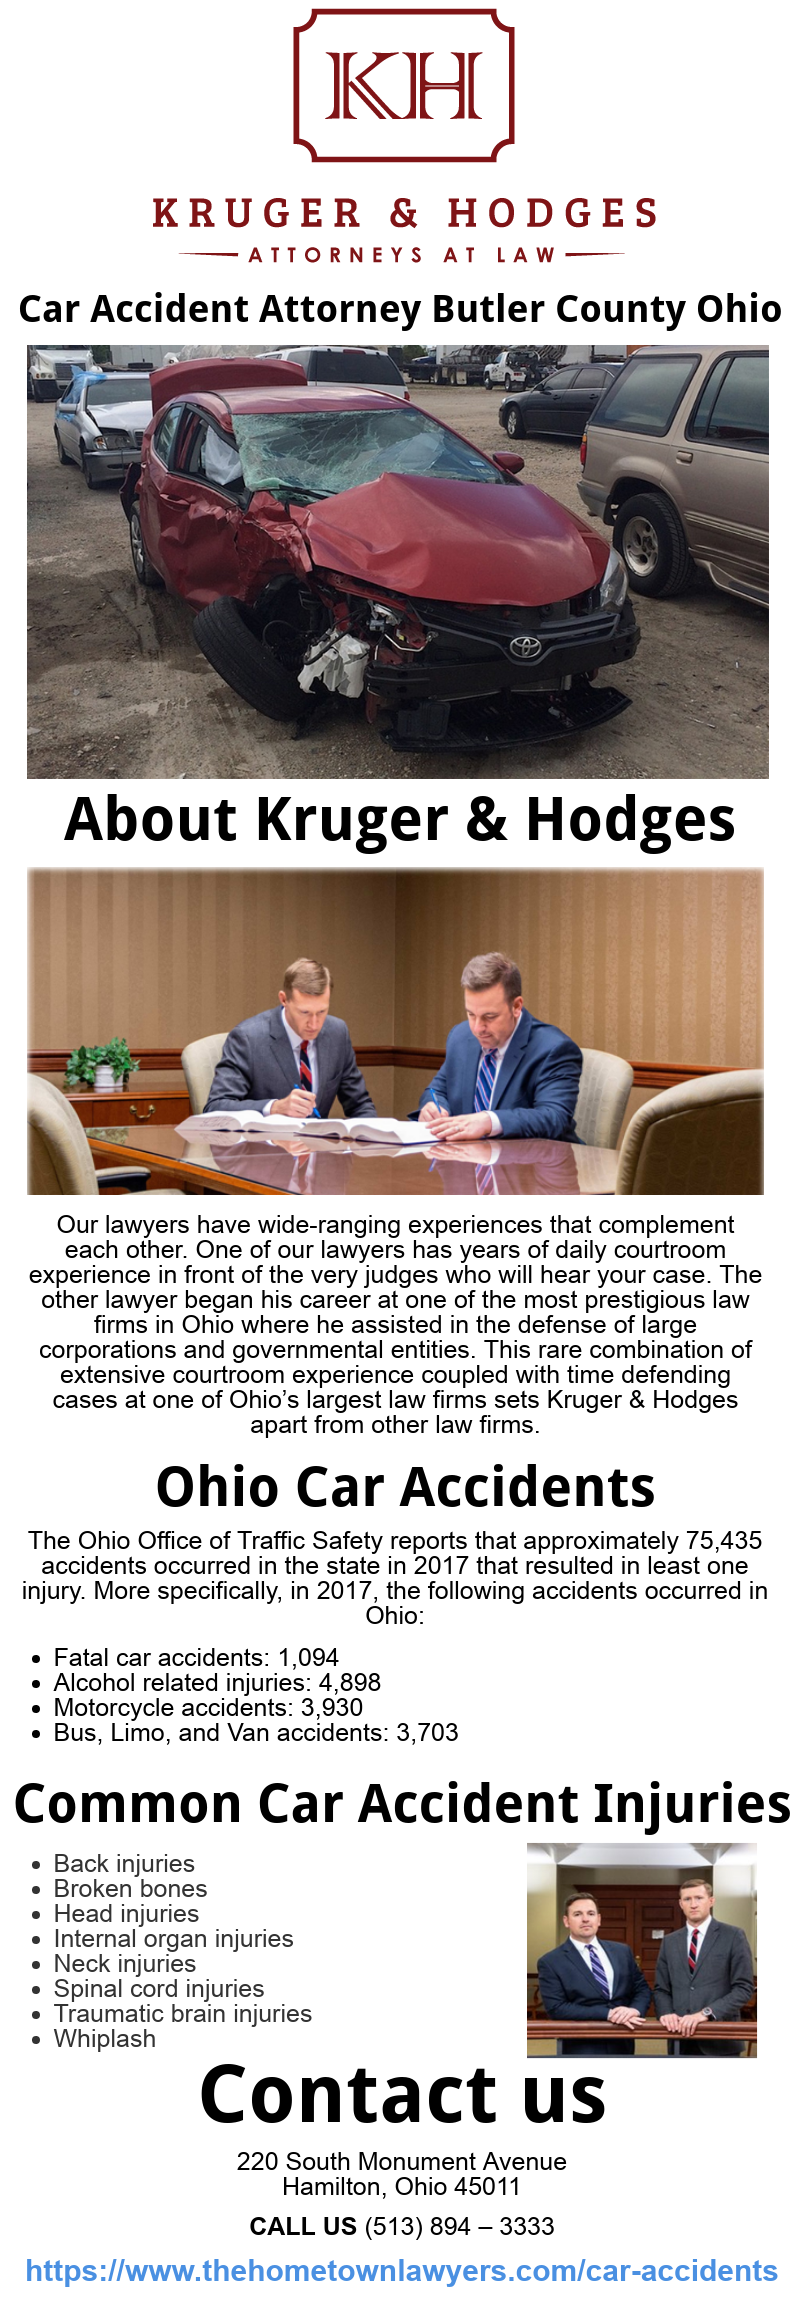 Kruger & Hodges LLC Attorneys at Law (thehometownlawyers) on Pinterest